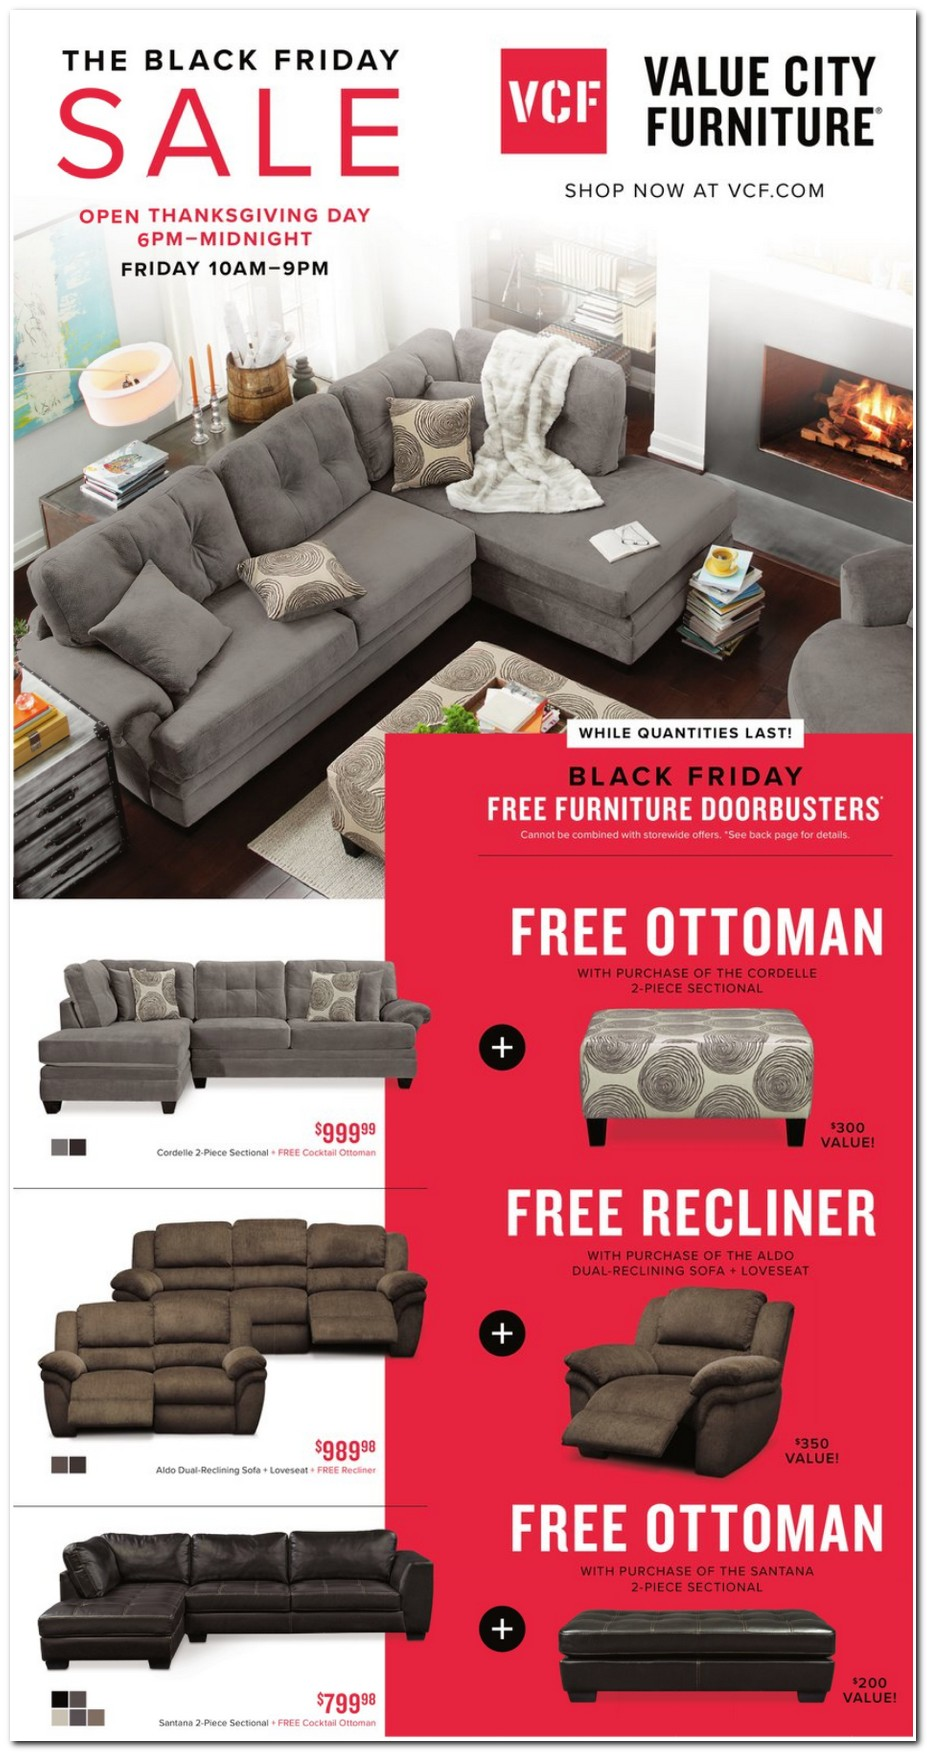 Value City Furniture 2017 Black Friday Ad Black Friday Archive